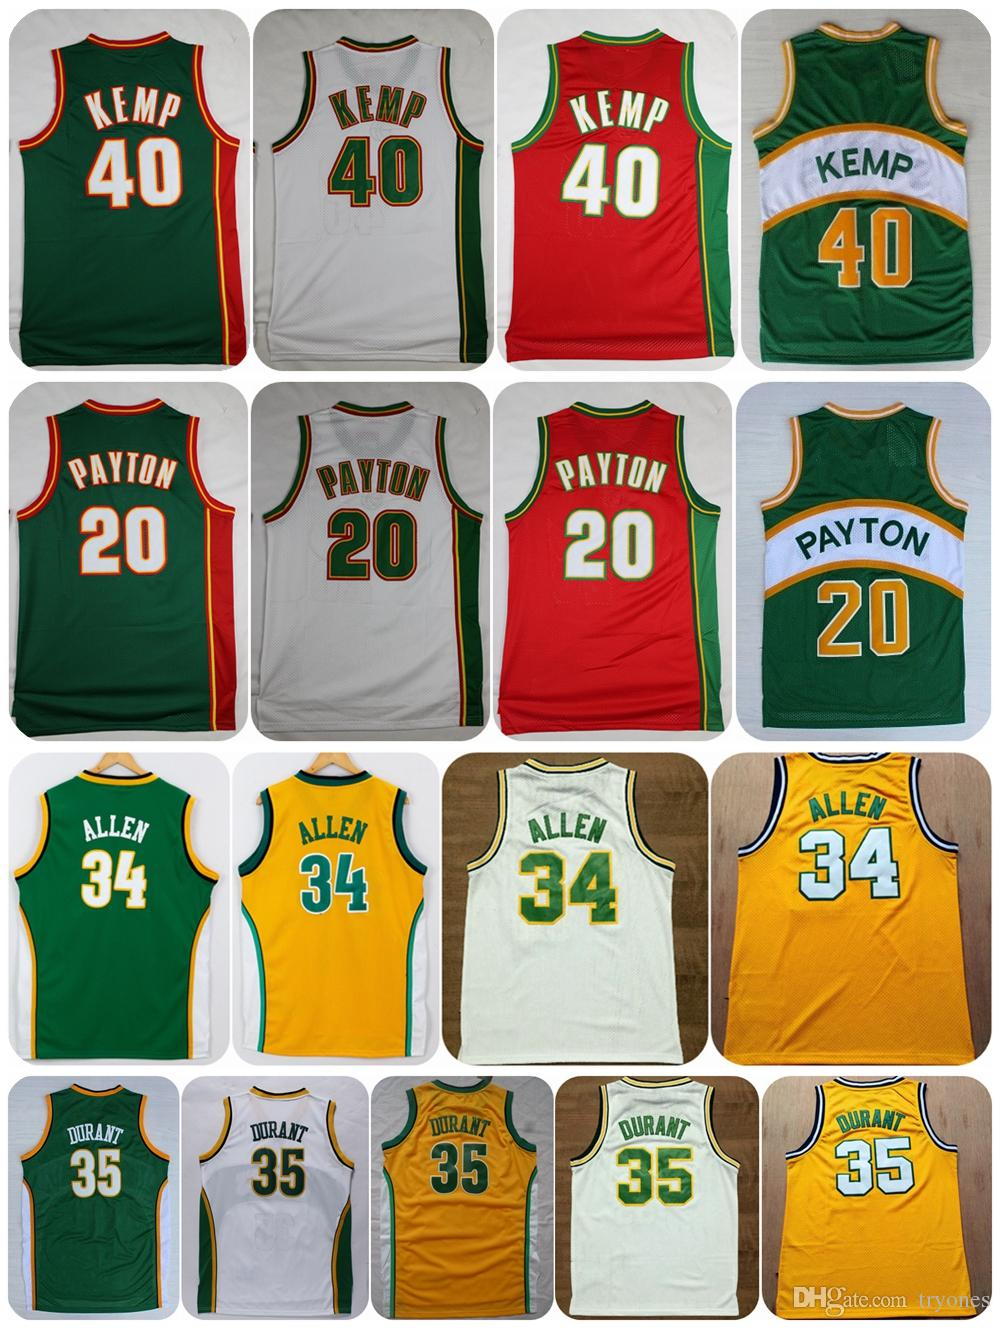 1f5d0734b ... 2017 Throwback Seattle Supersonics Basketball Jerseys Retro The Glove  20 Gary Payton Reign Man 40 Shawn ...